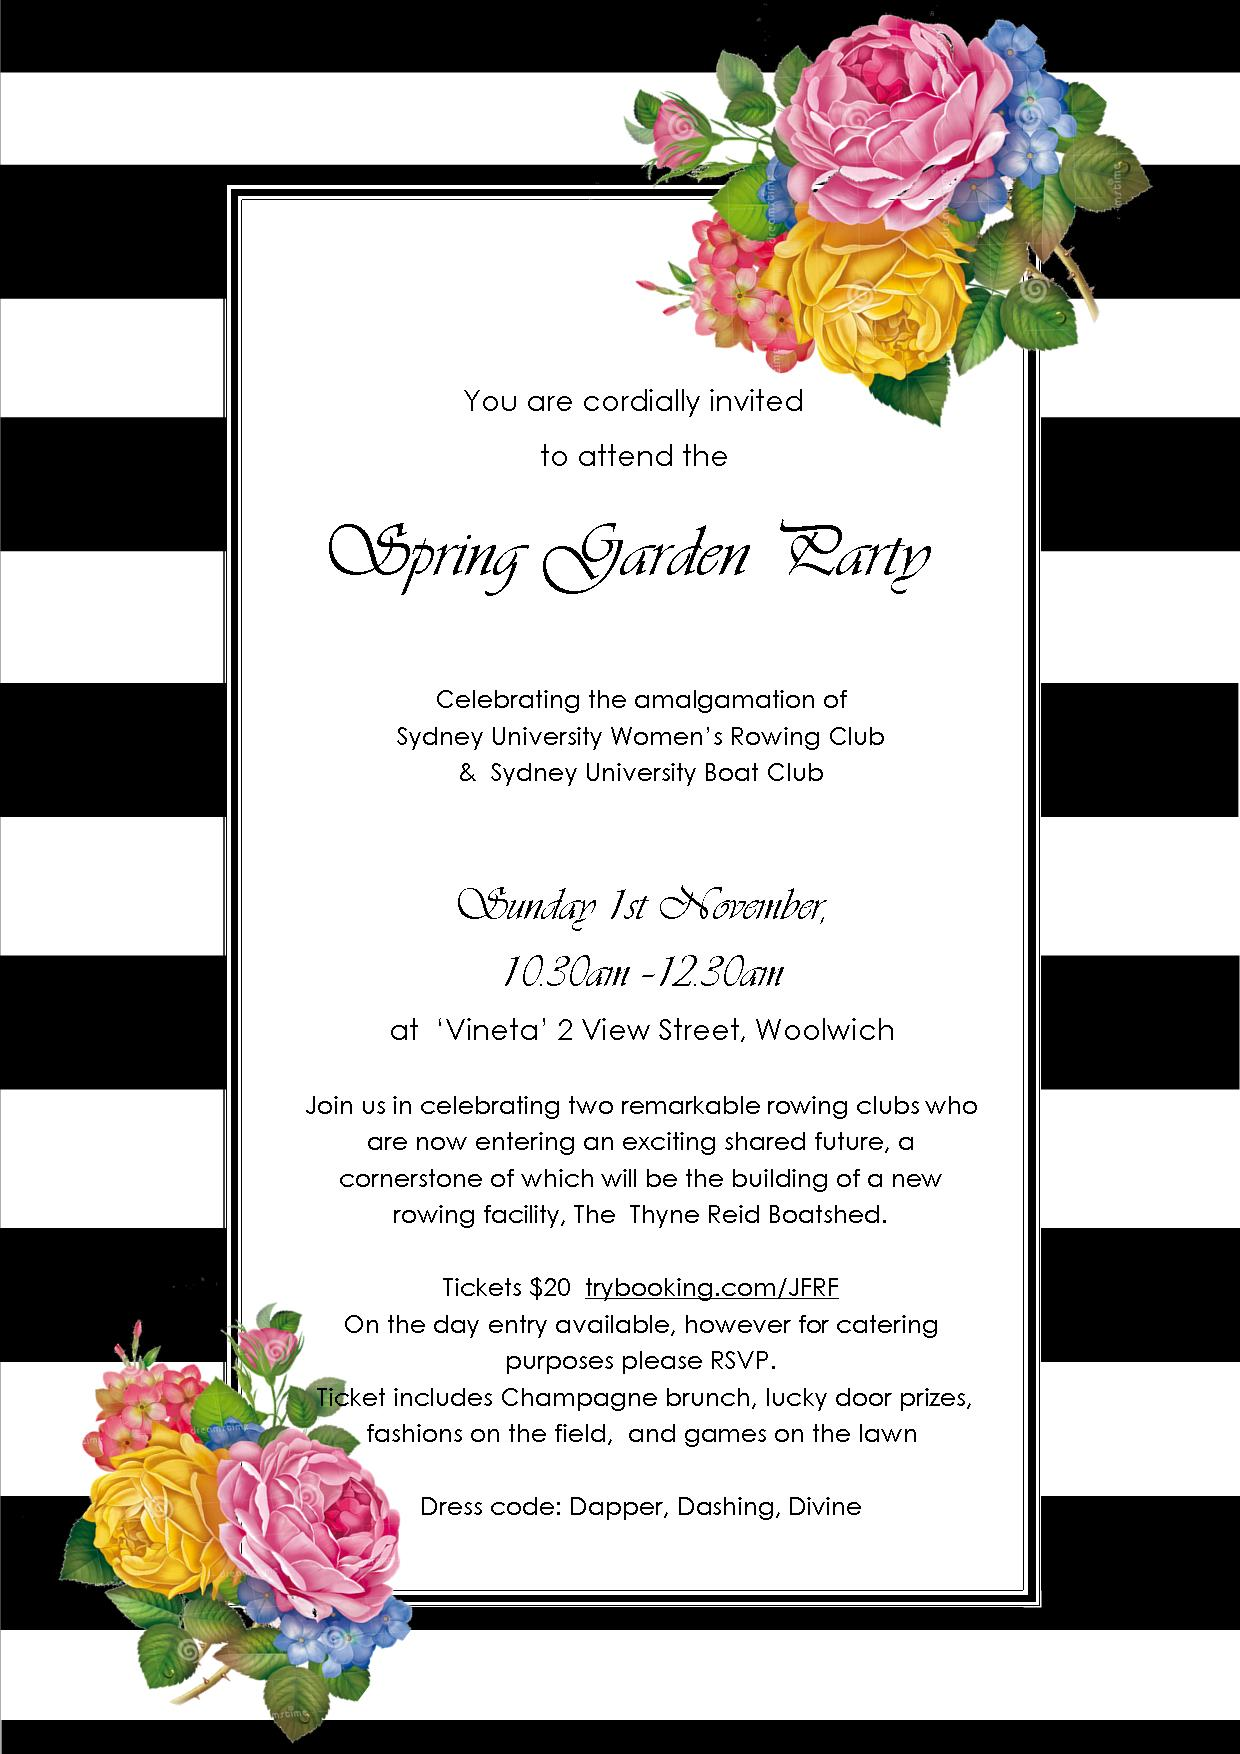 Spring Garden Party Invitation and Ticket info